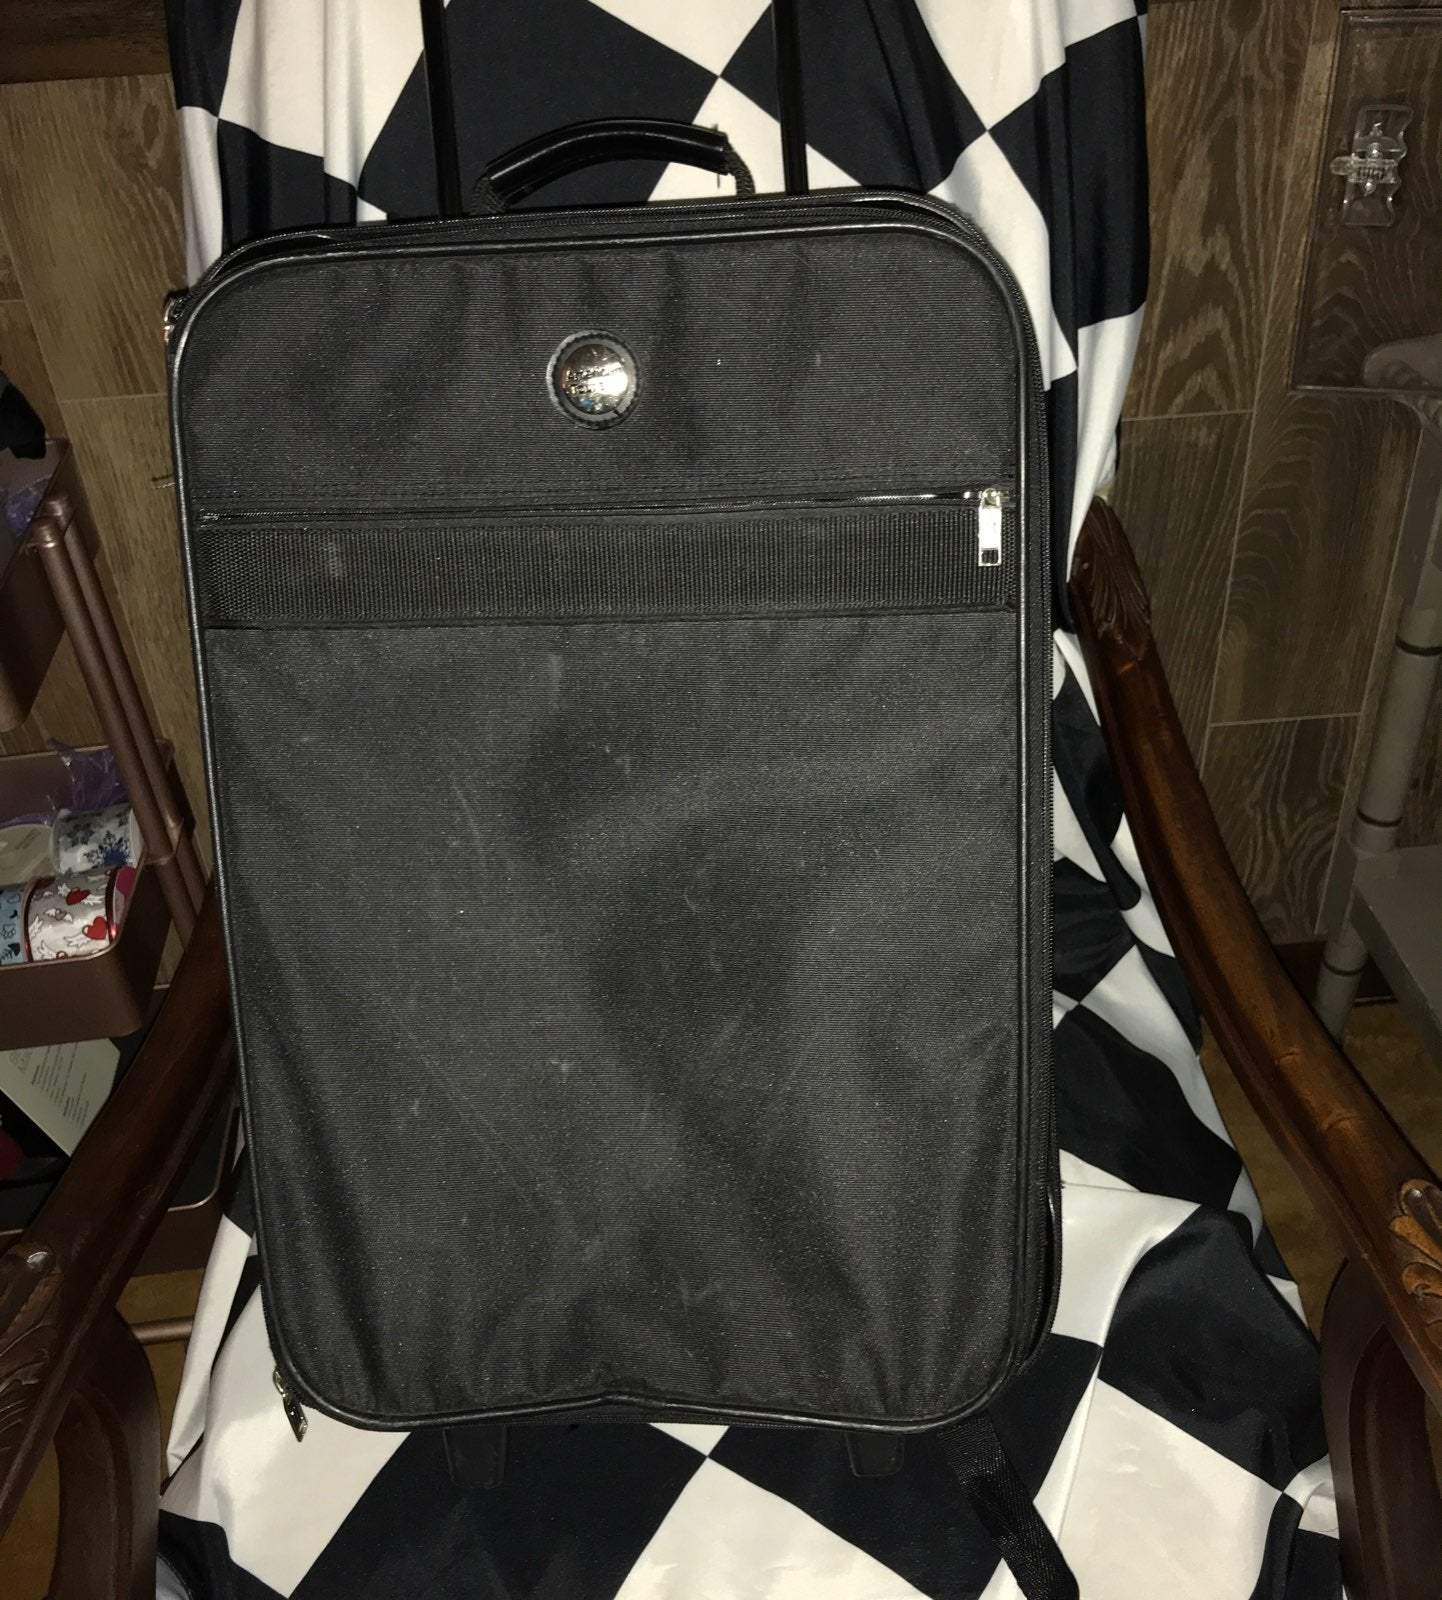 American Tourister carry on roller bag